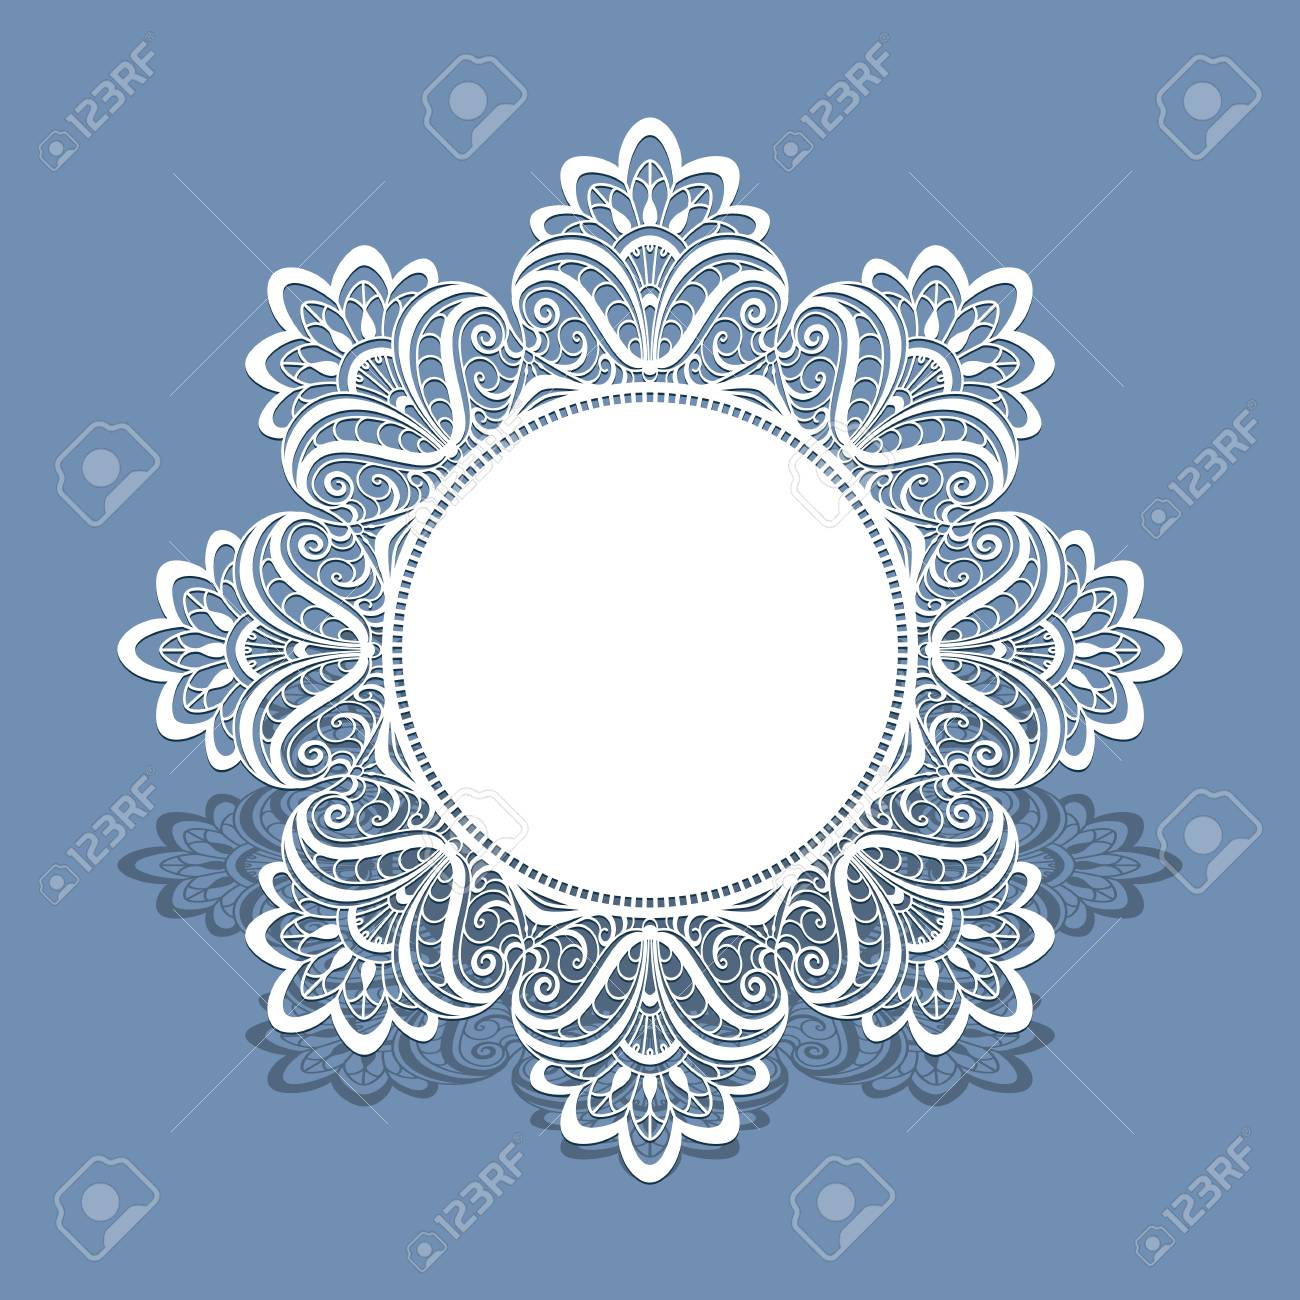 Paper Lace Doily Greeting Card Wedding Invitation Or Announcement